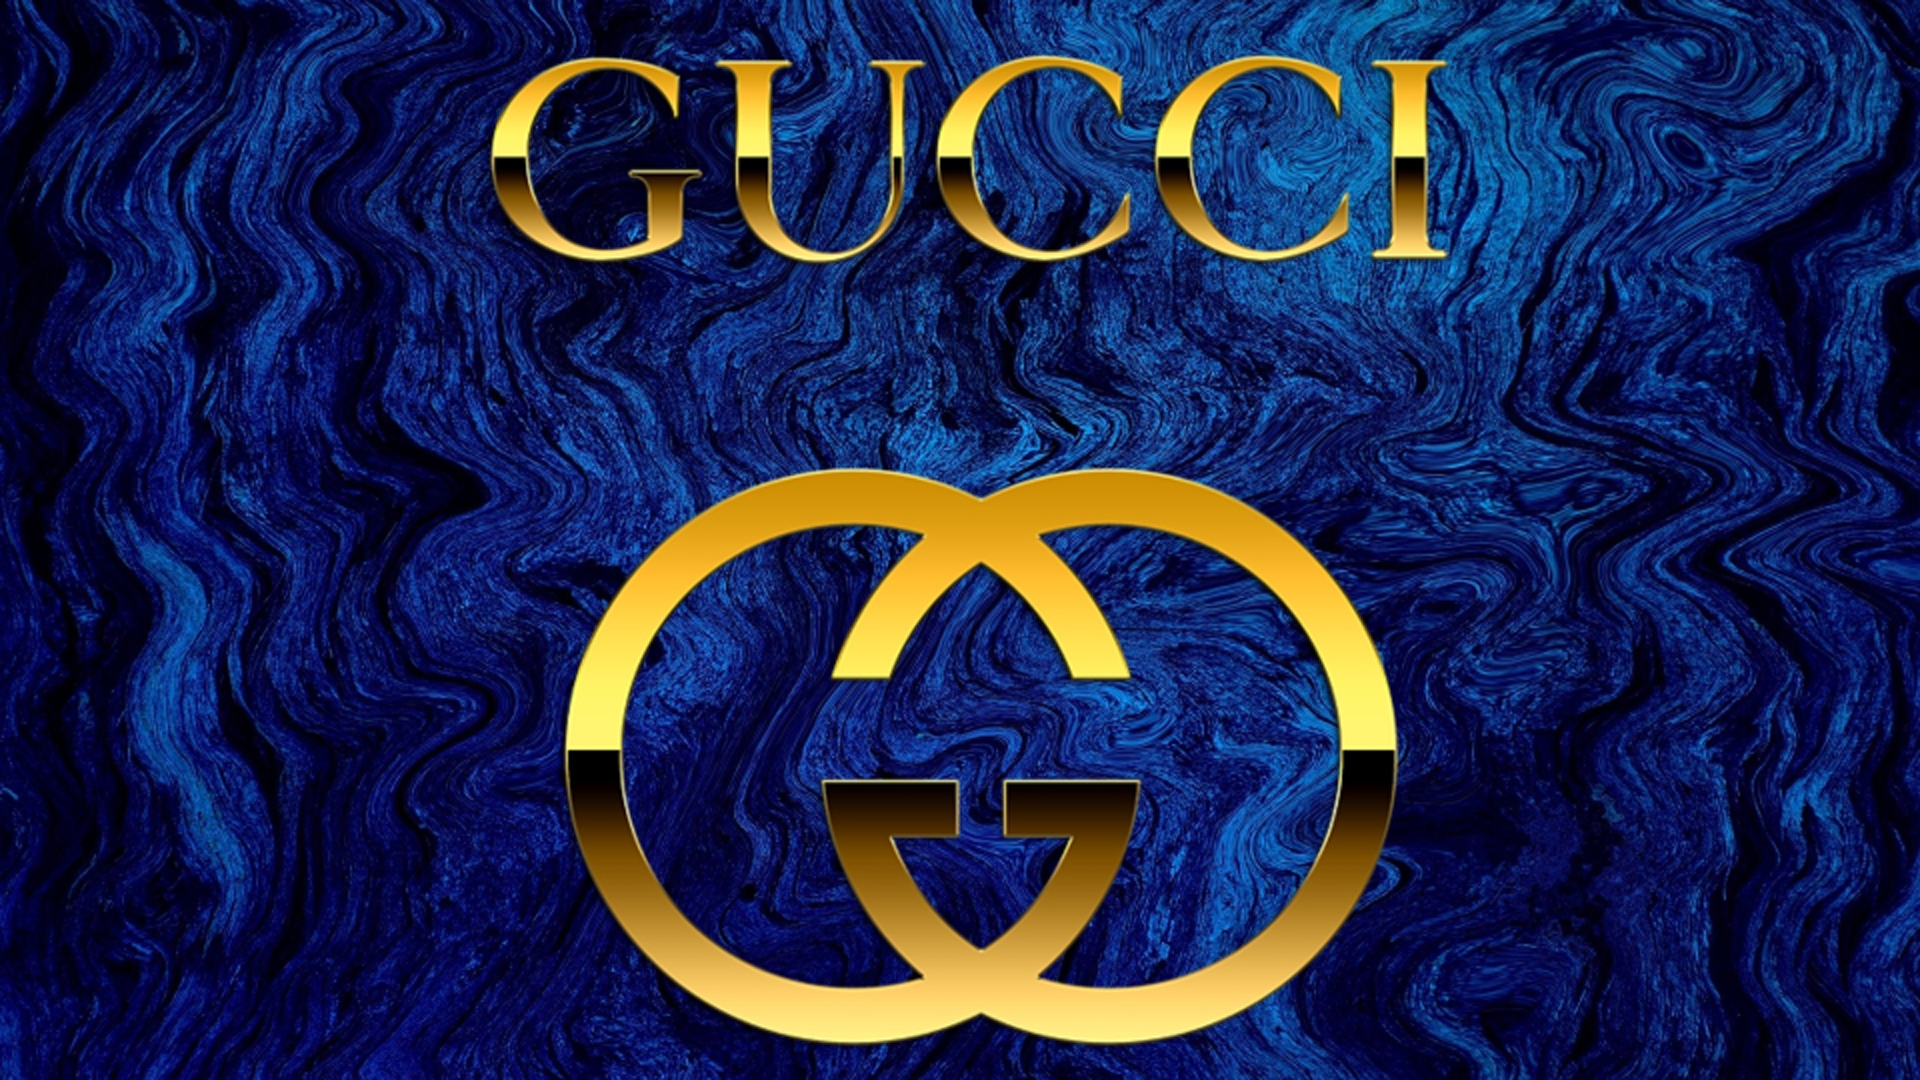 Modern Design With Cool Gucci Wallpaper